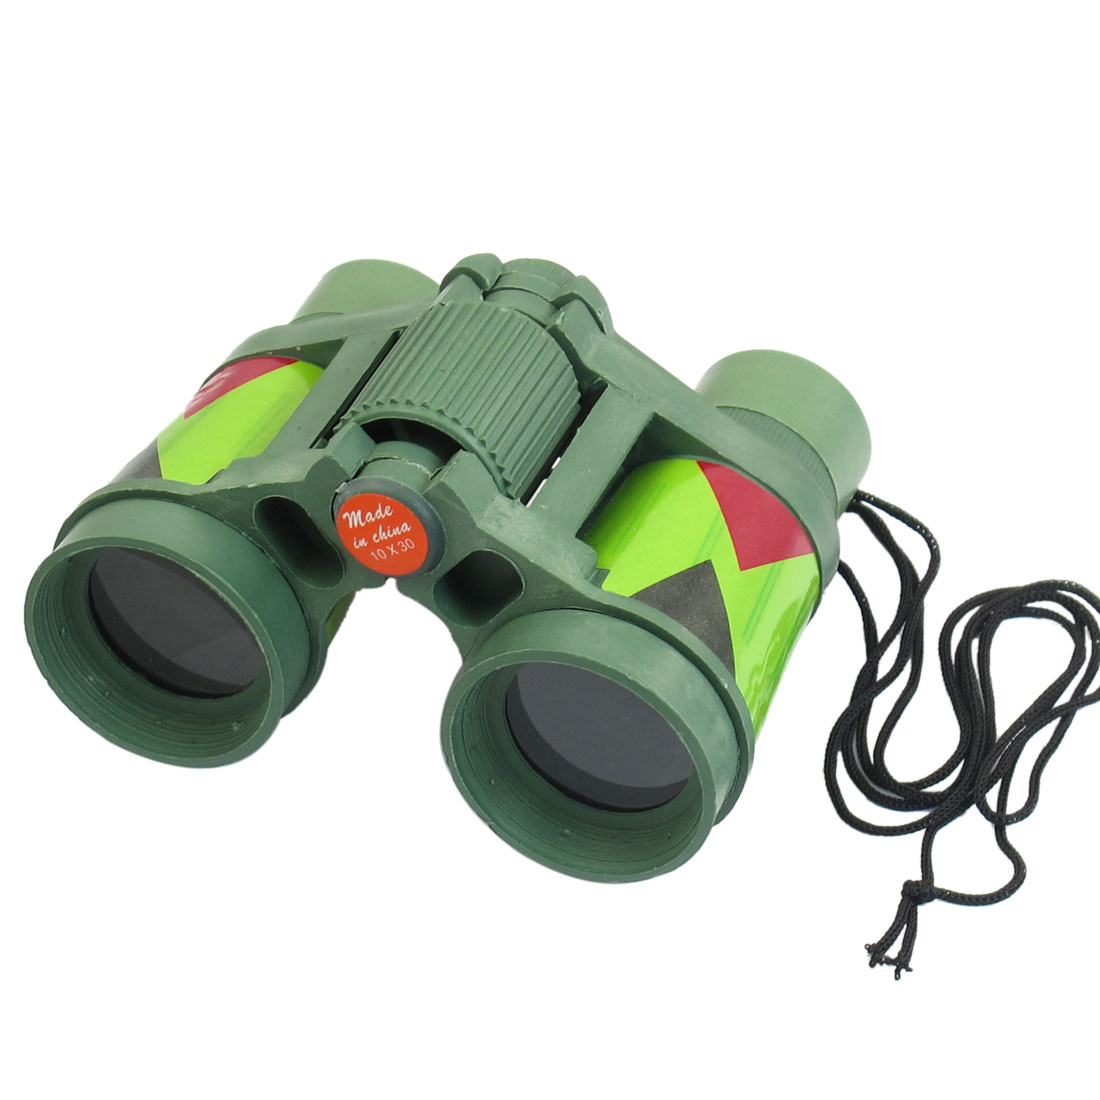 Camouflage Color Plastic 10mm x 30mm Binocular Toy for Child Kids